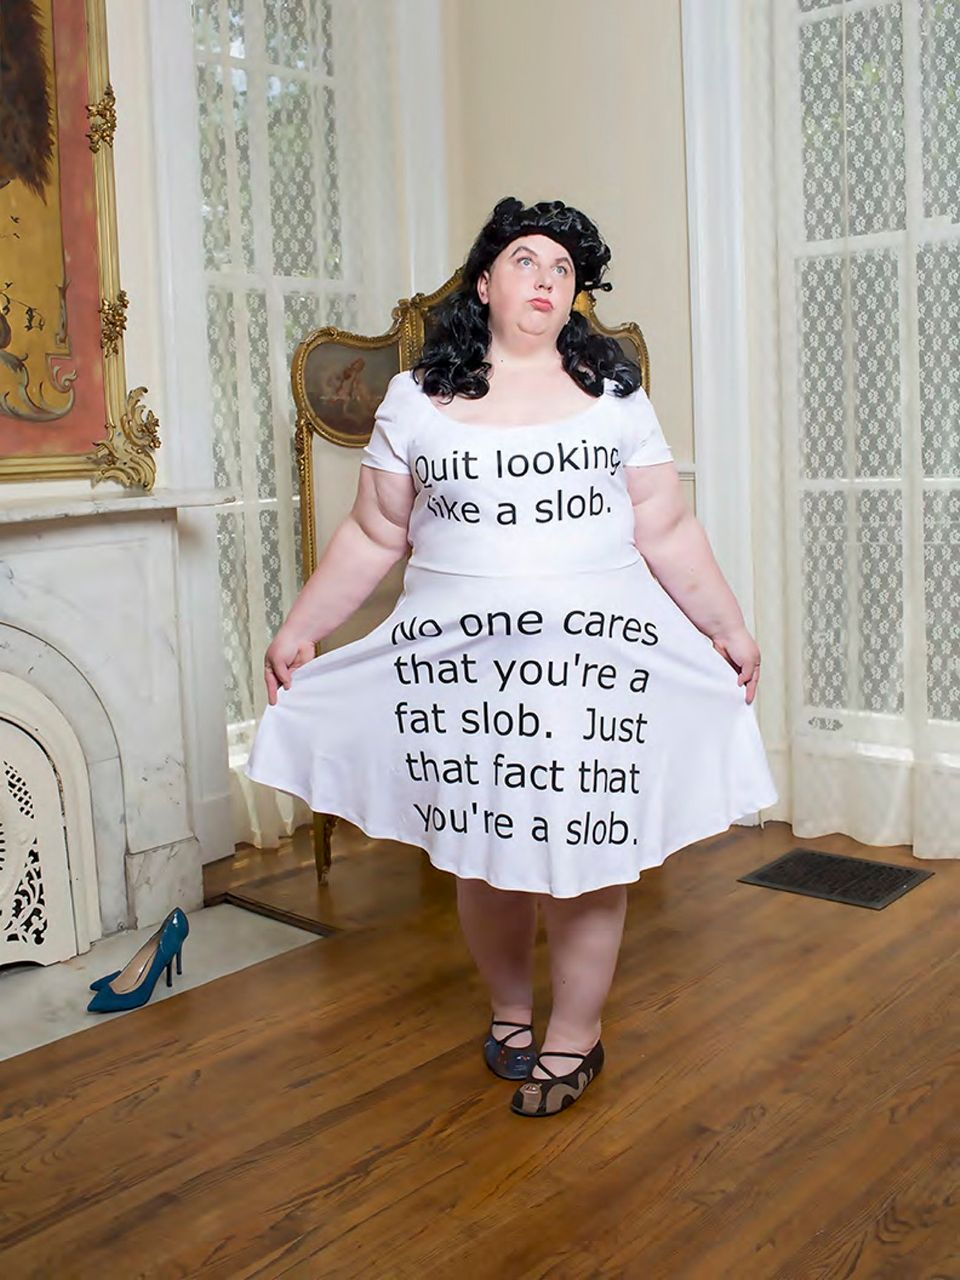 Photographer Mocks Fat-Shaming Trolls, Turning Their Comments Into Stunning